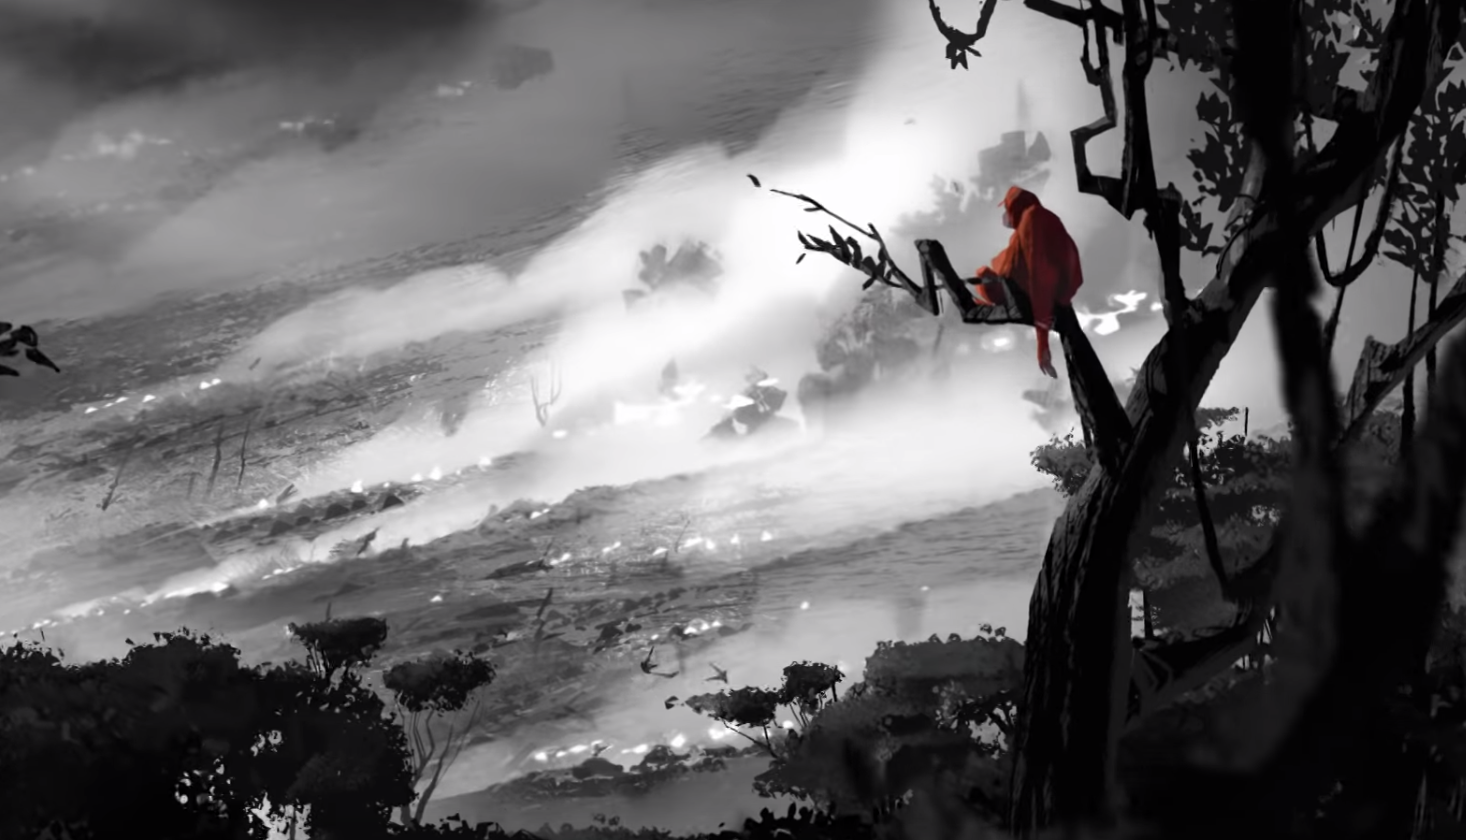 The Iceland Palm Oil Ad Was Always Going to Get Banned – And it's Genius